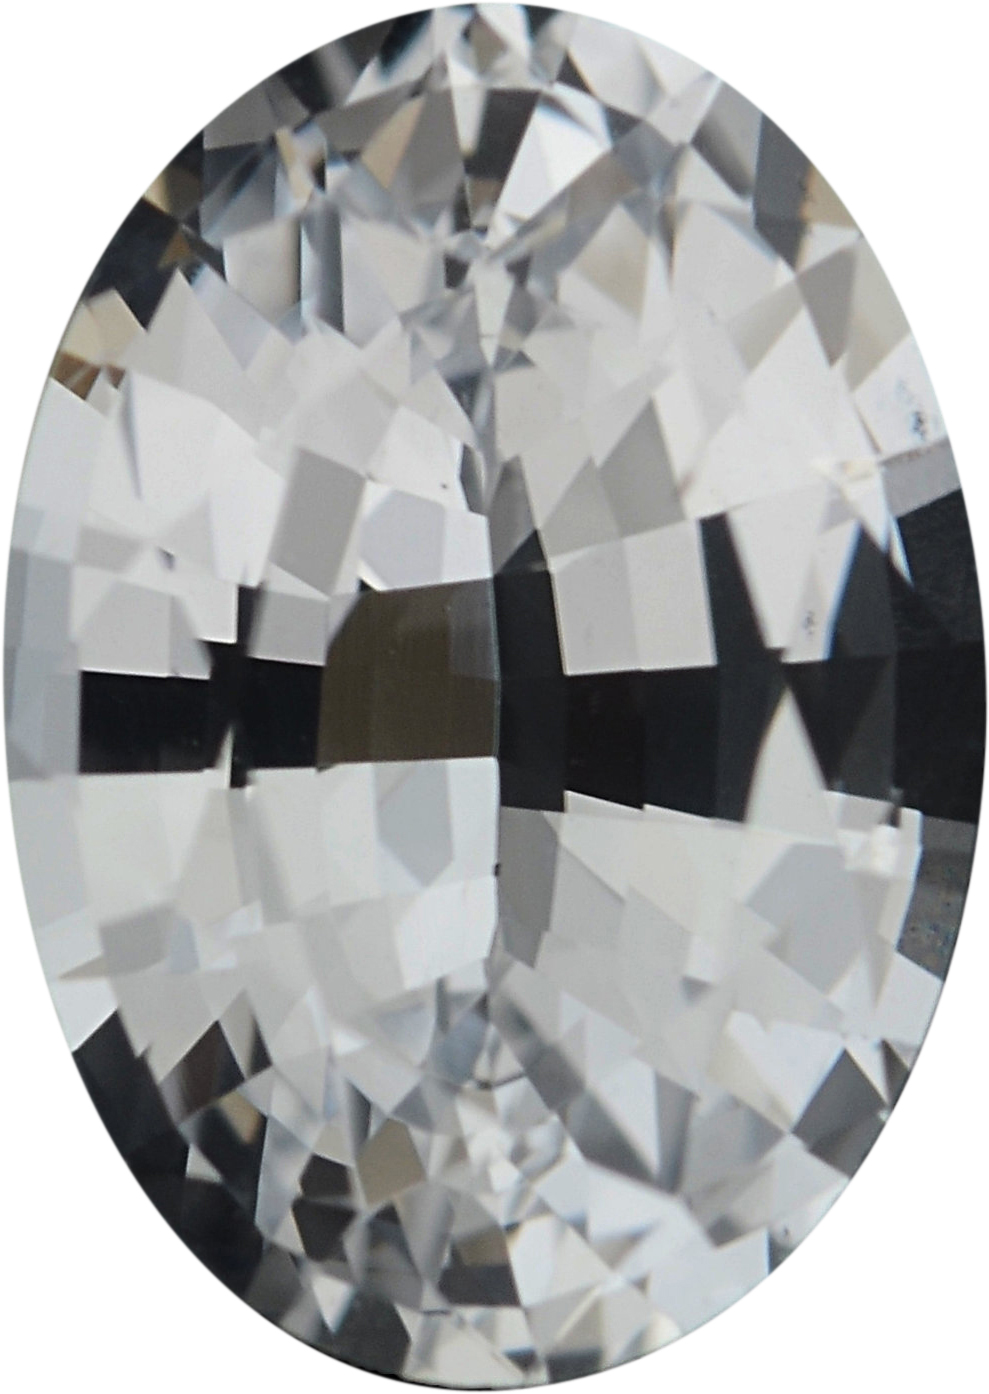 0.81 carats White Loose Sapphire Gemstone in Oval Cut, 6.82 x 4.86 mm